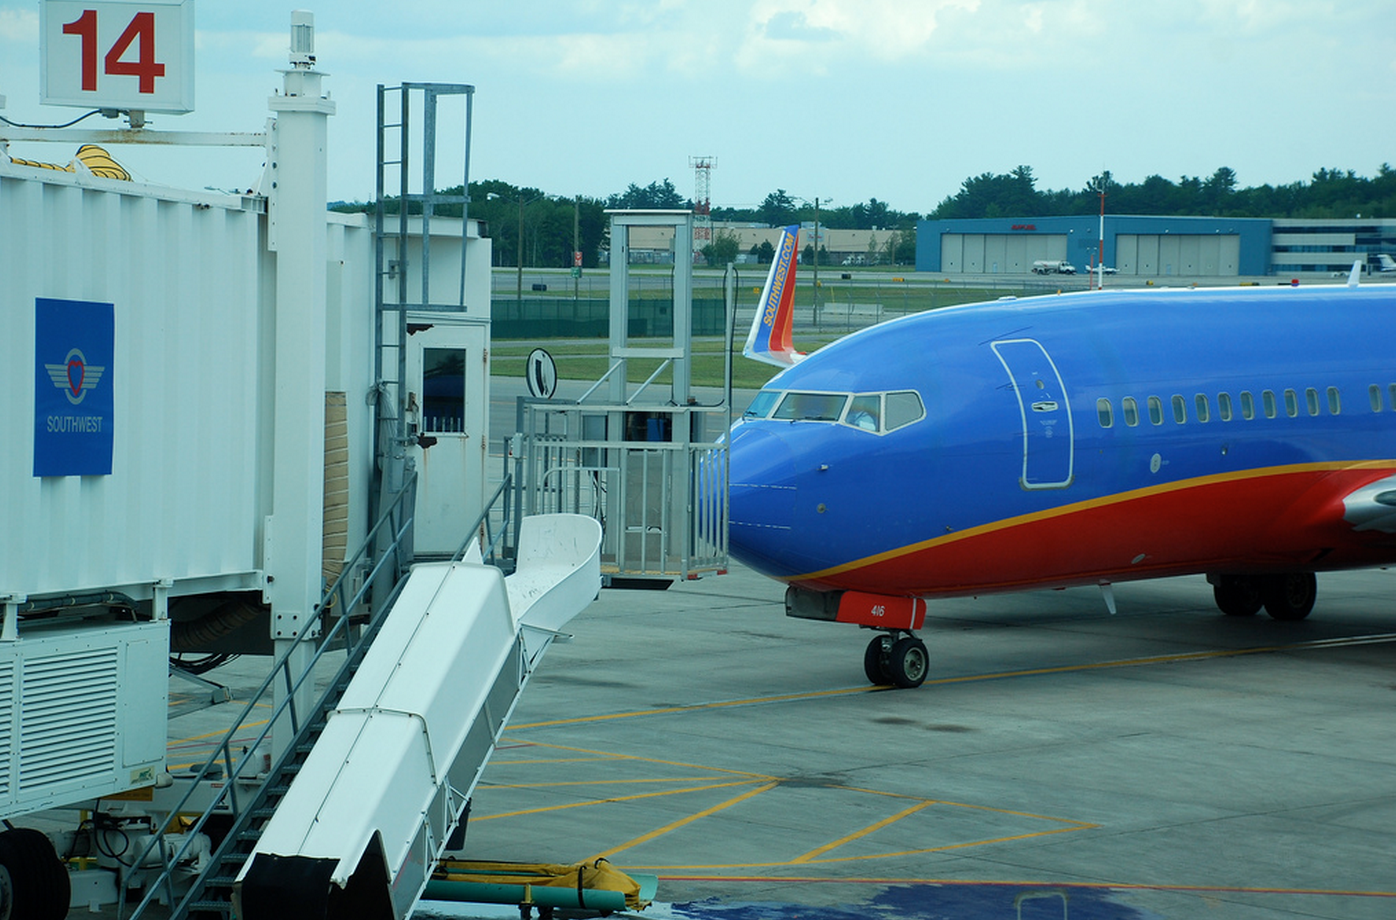 Southwest Baggage Handlers Say Too Many Flights + More Passengers + Not Enough Planes = Delays